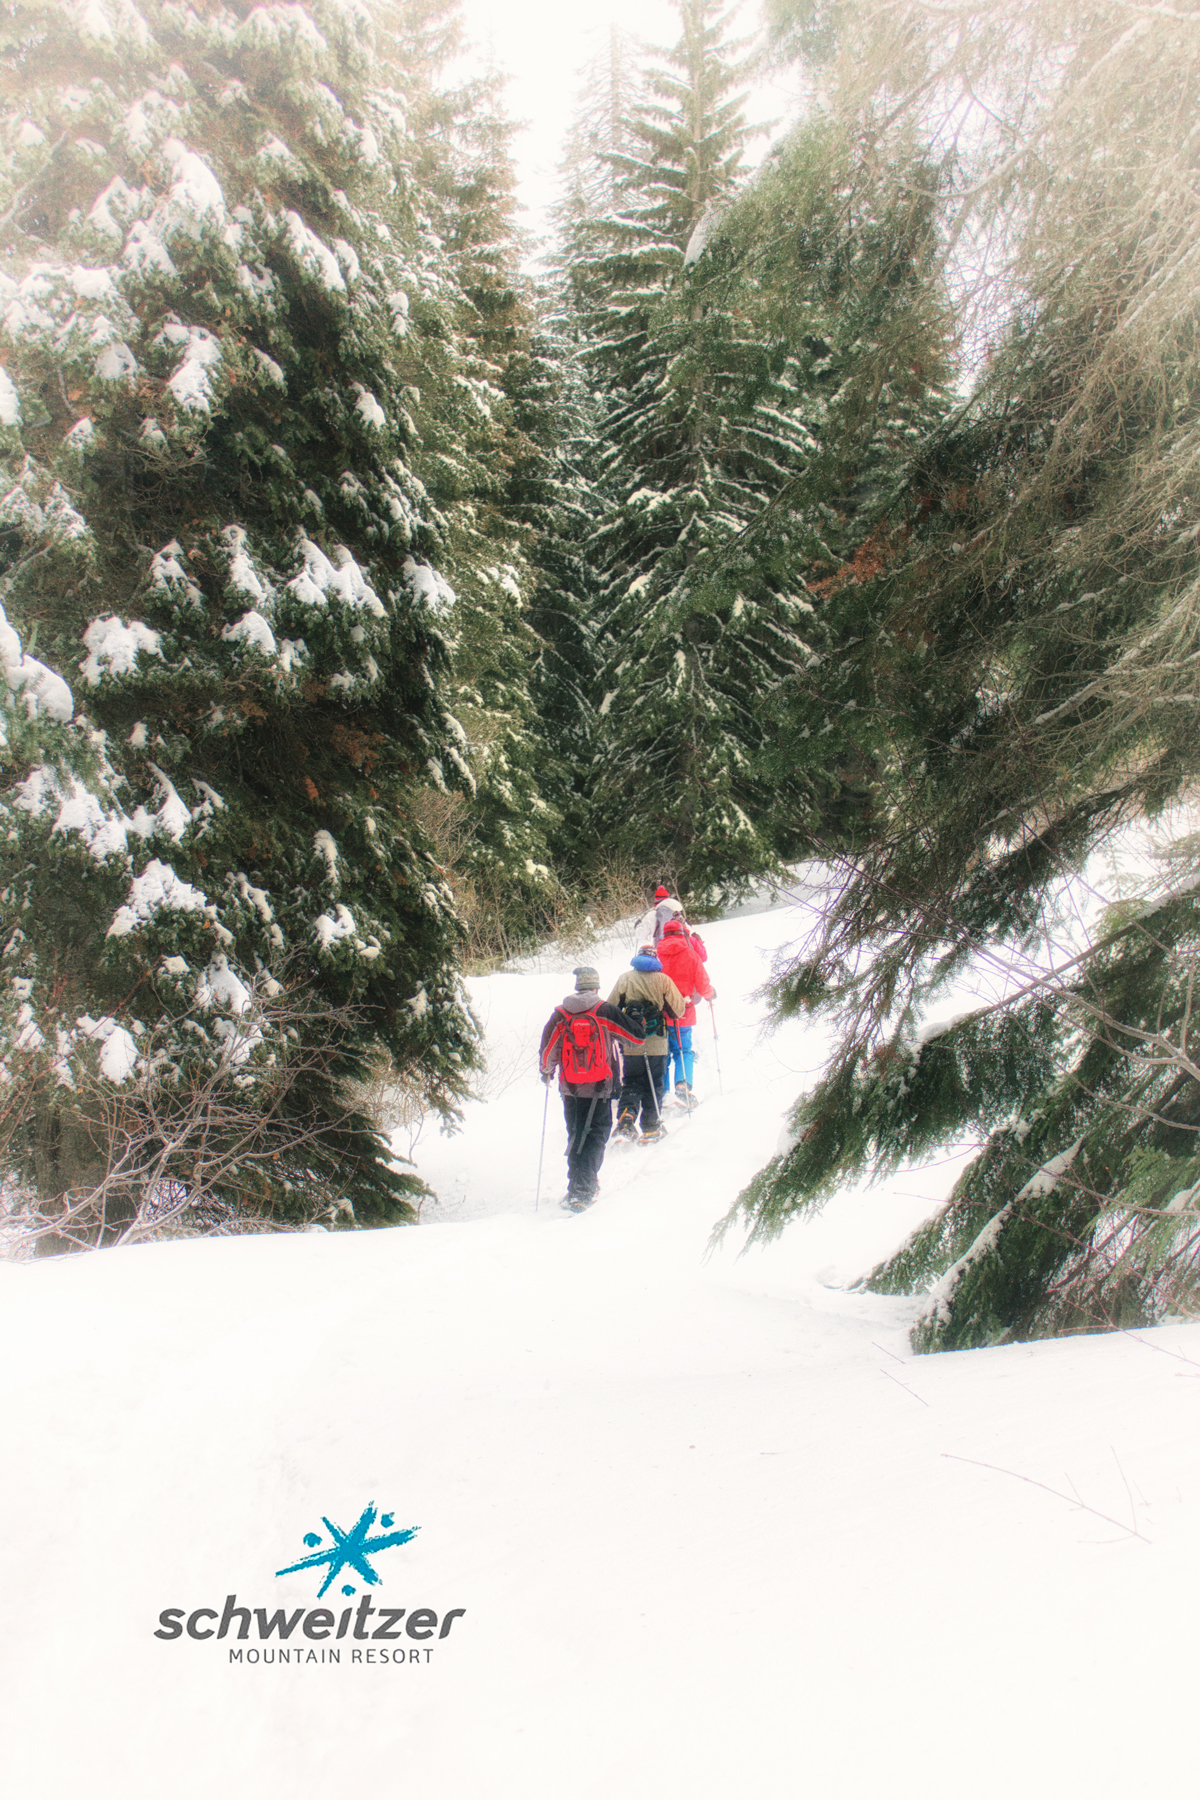 Guided Snowshoe Hikes with Schweitzer Mountain Resort in Beautiful Idaho